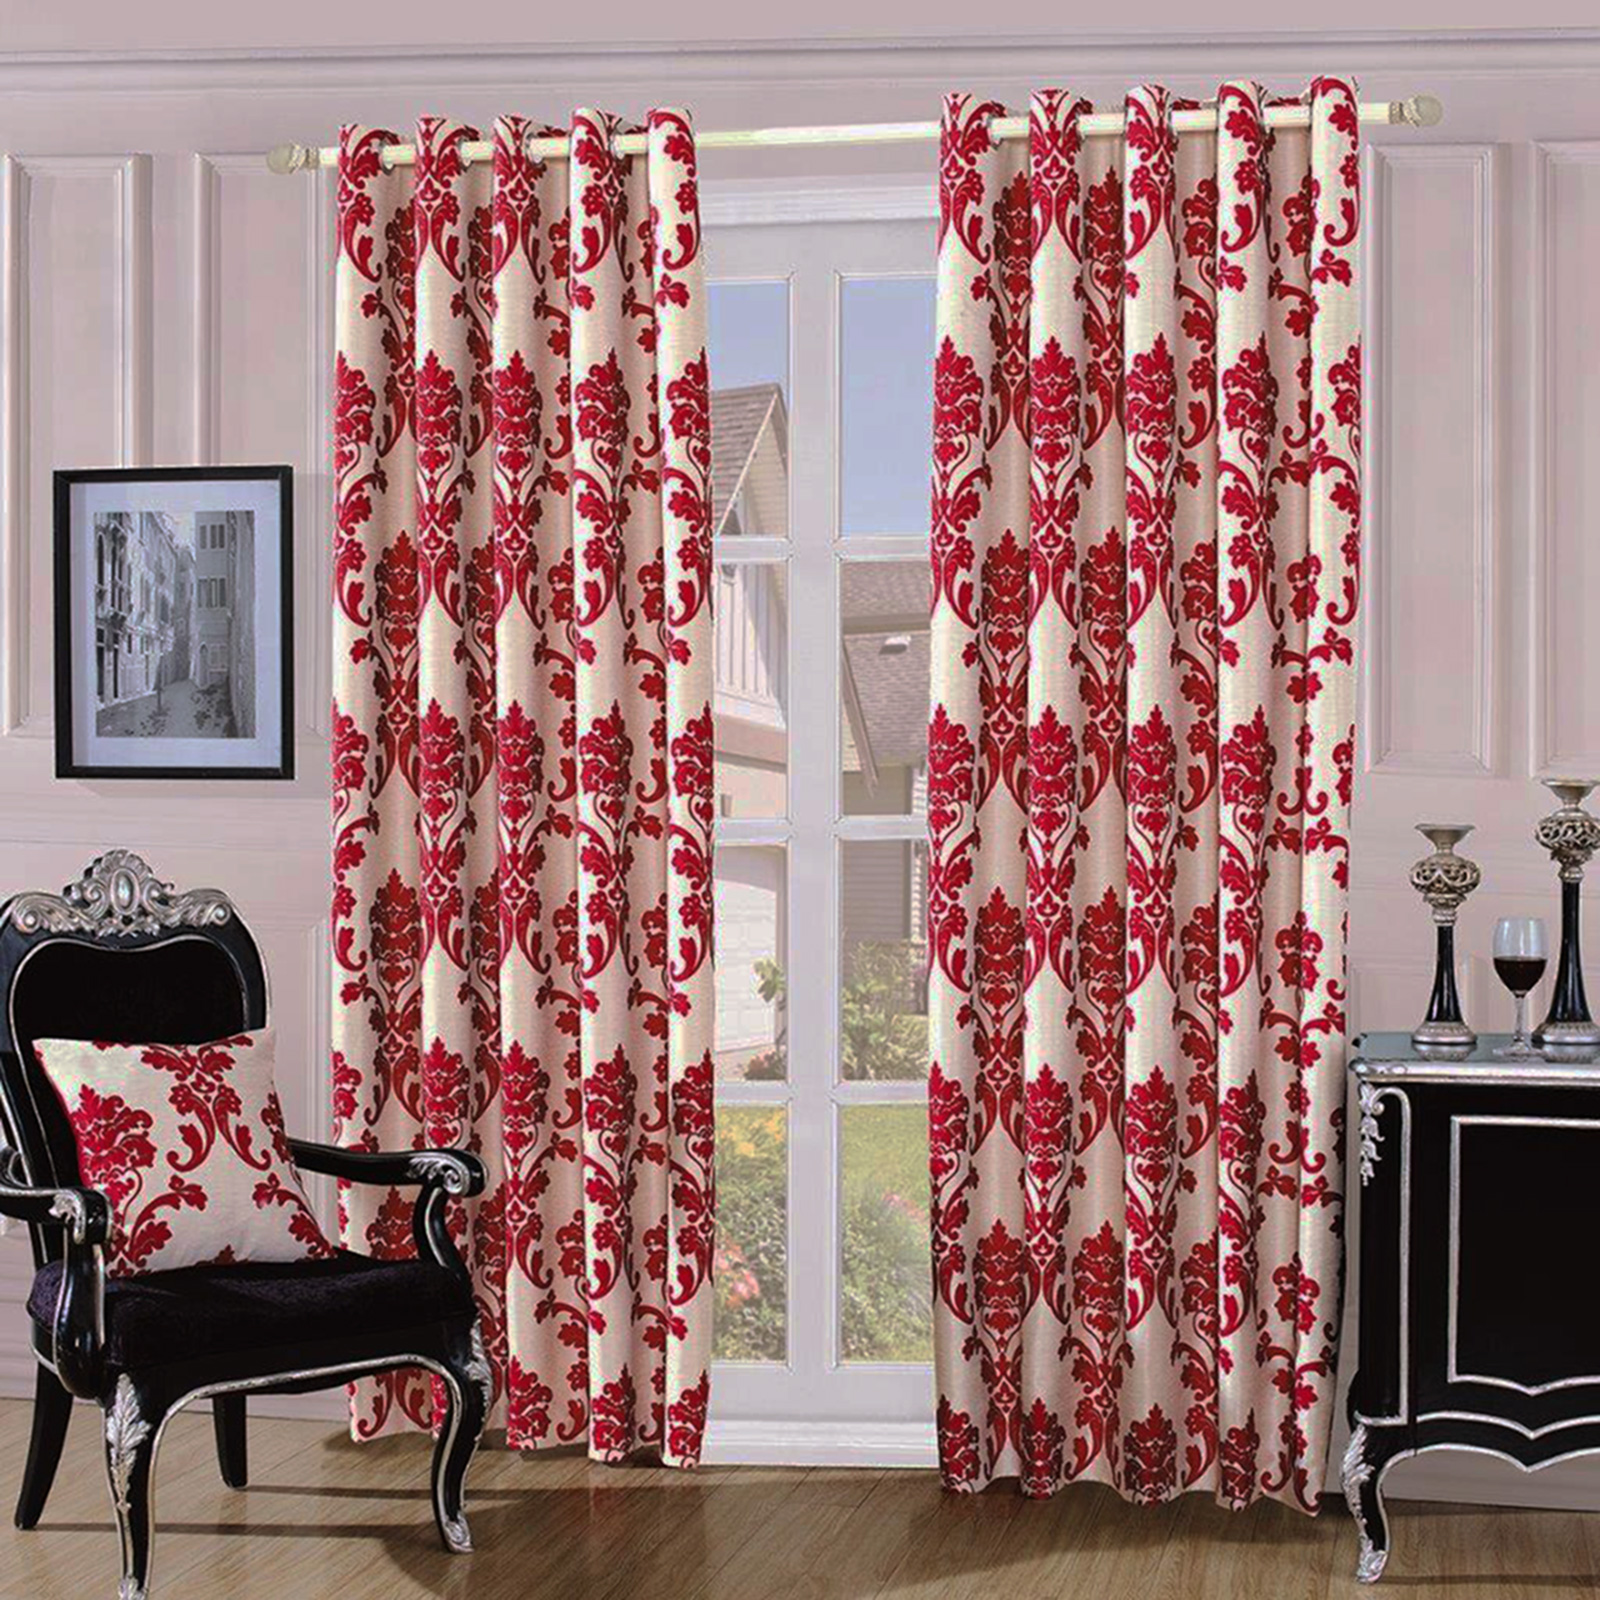 Fully Lined Quality Jacquard Damask Curtains Ready Made With - Ready made curtains red